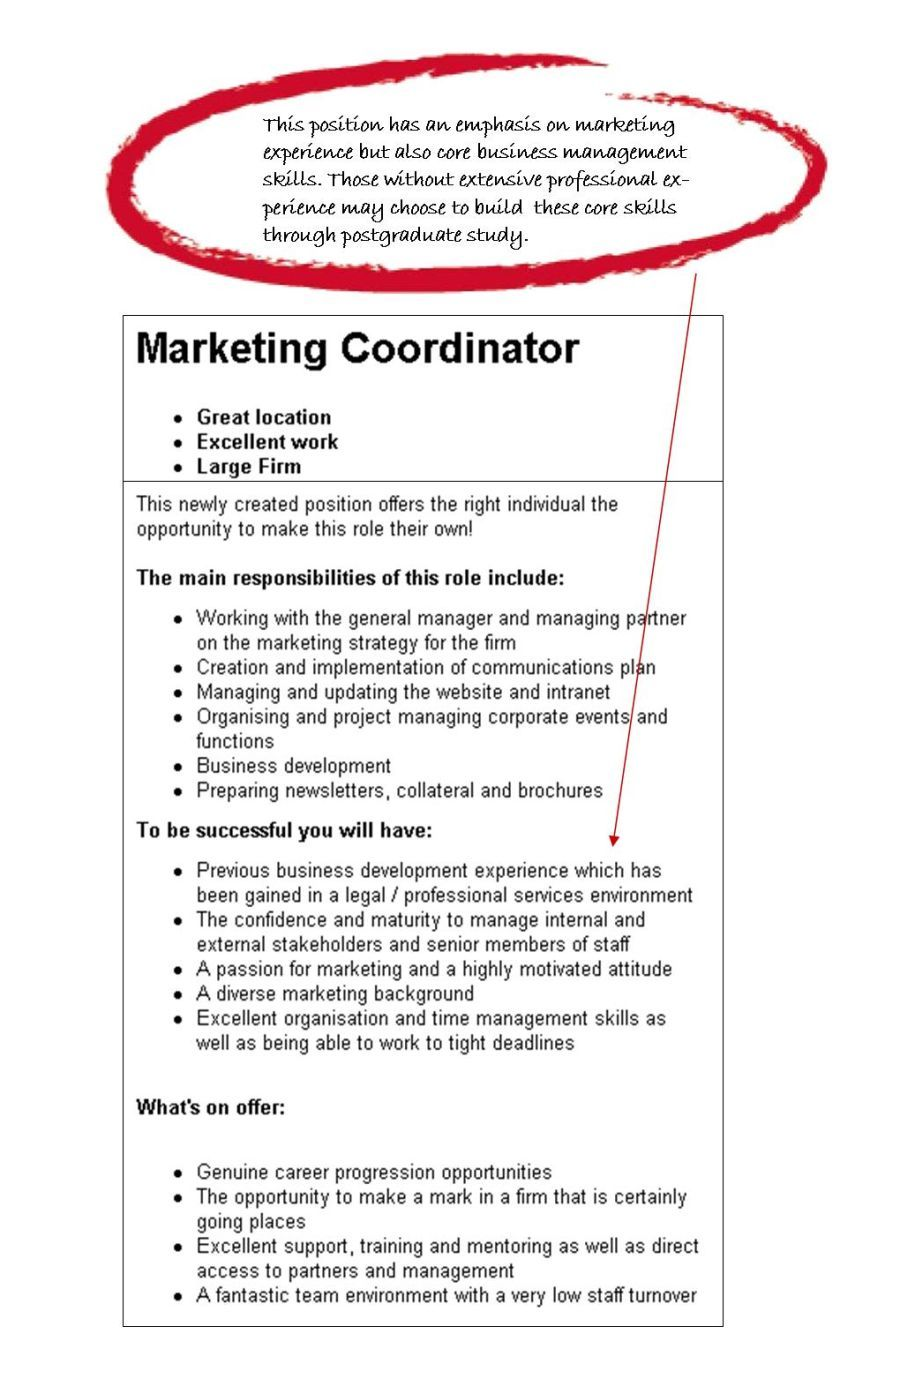 How To Write An Objective For Resume Objectives For Resume  Resume  Pinterest  Resume Objective And